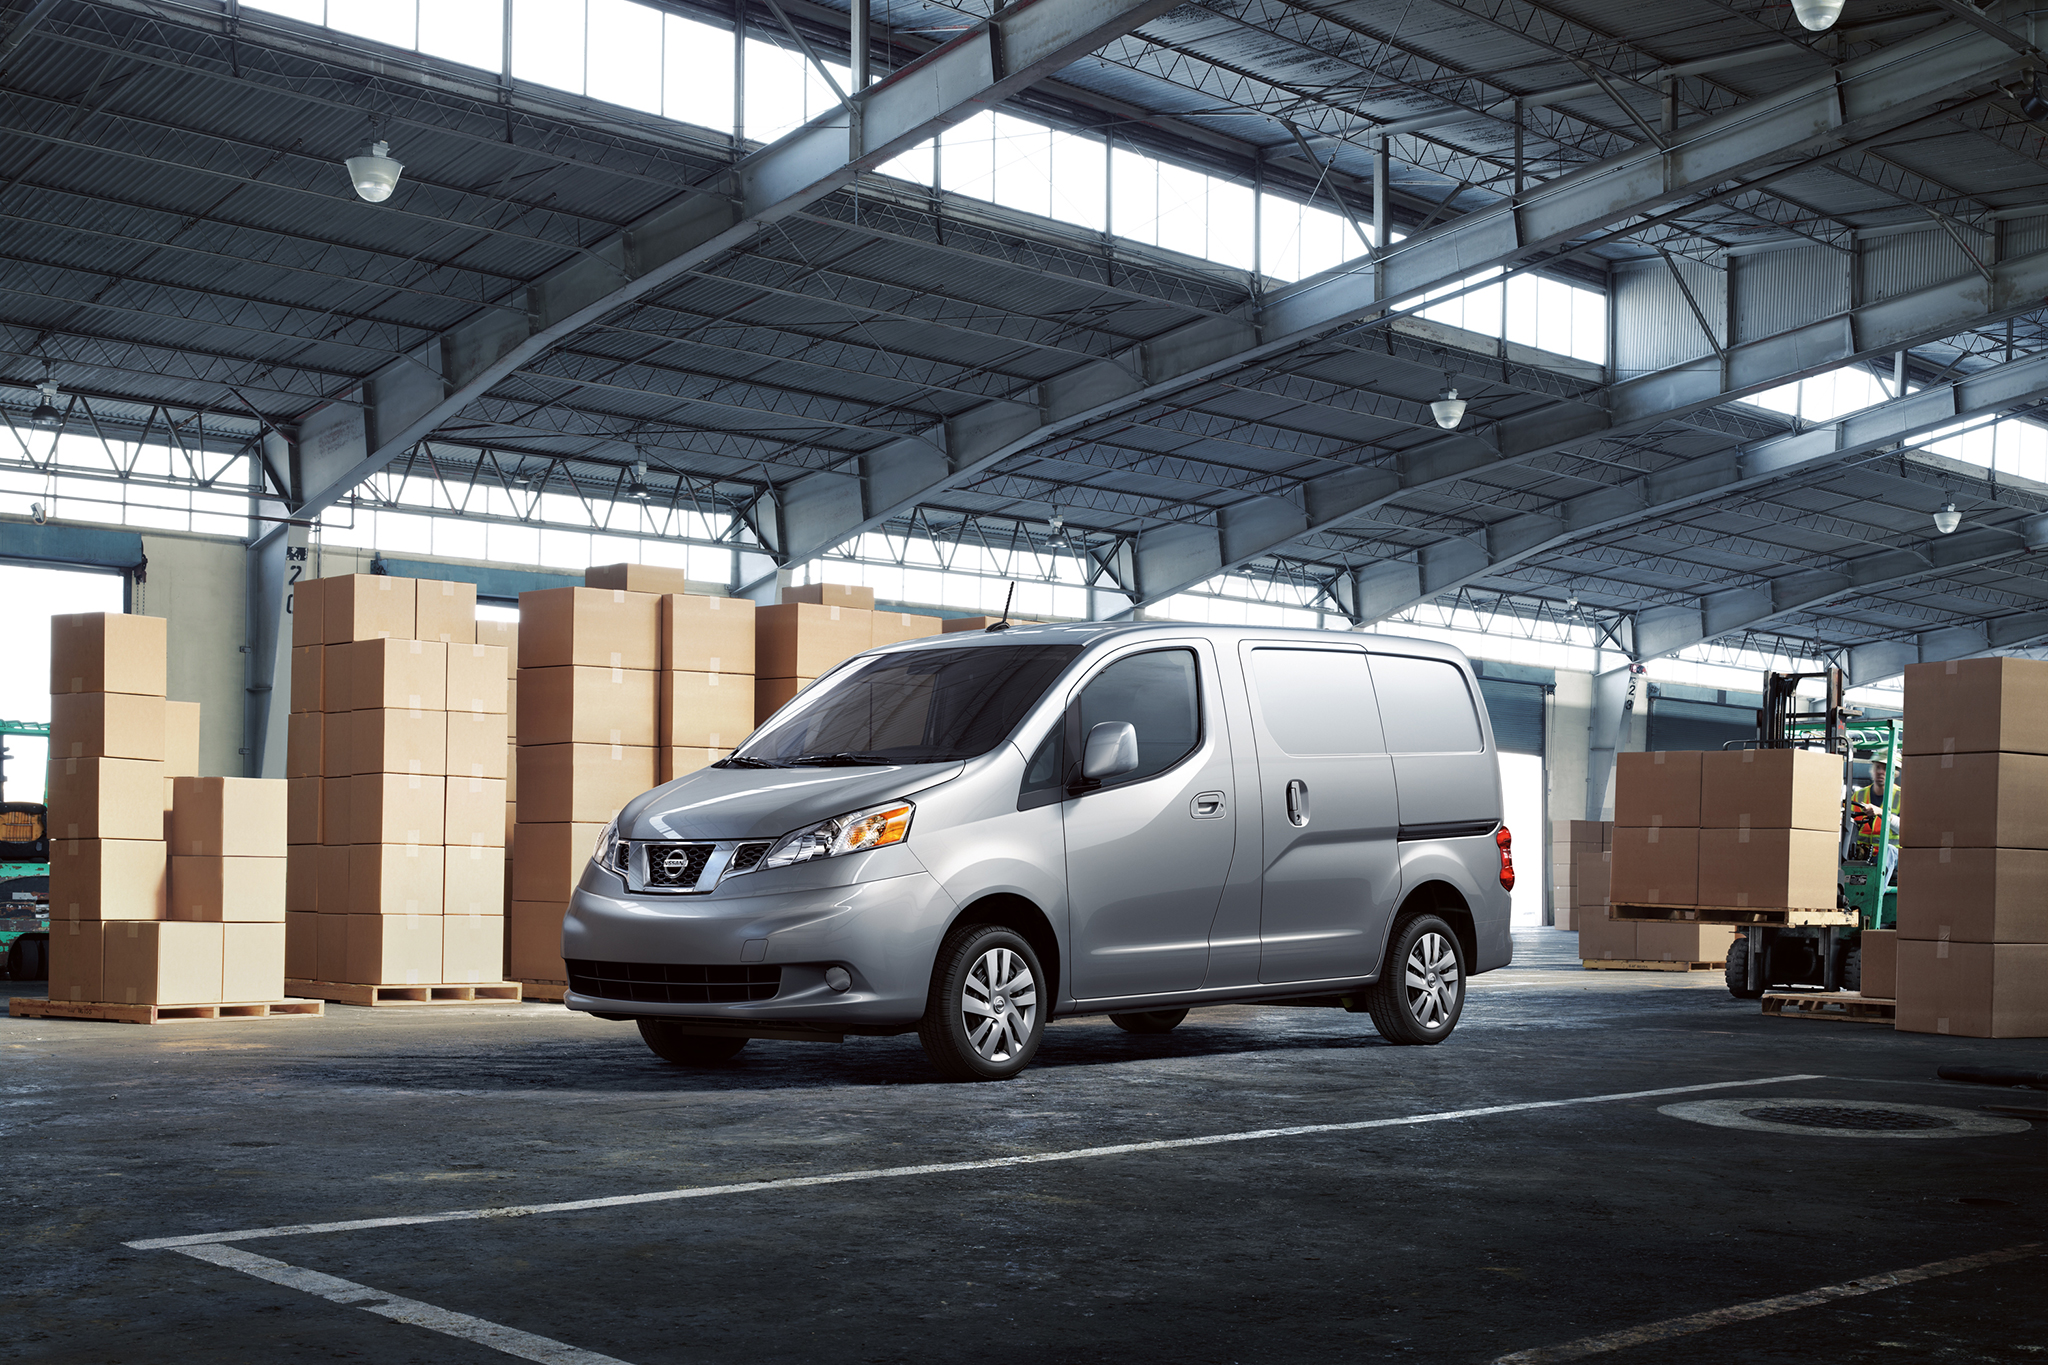 2014 Nissan NV200 Price Increases By $250